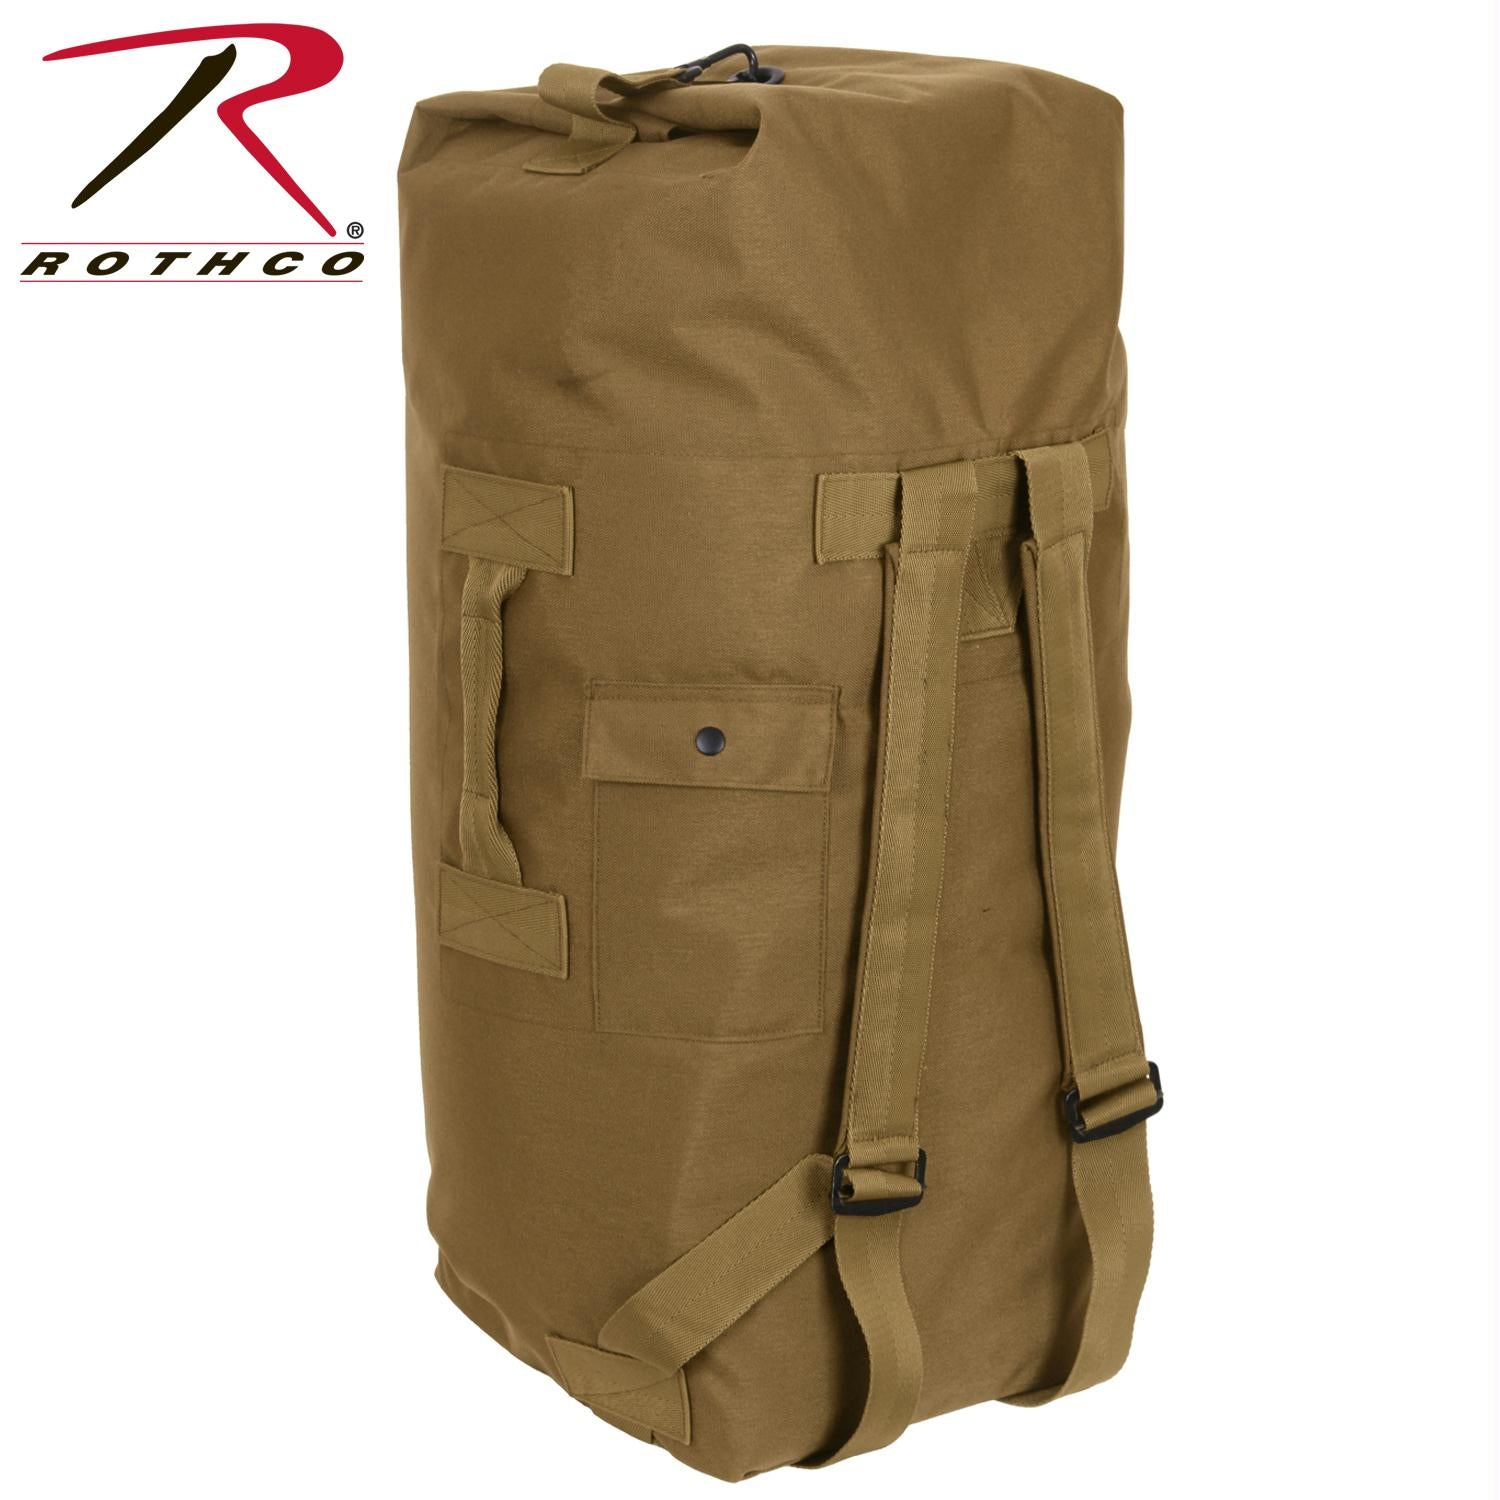 Rothco G.I. Type Enhanced Double Strap Duffle Bag - Coyote Brown